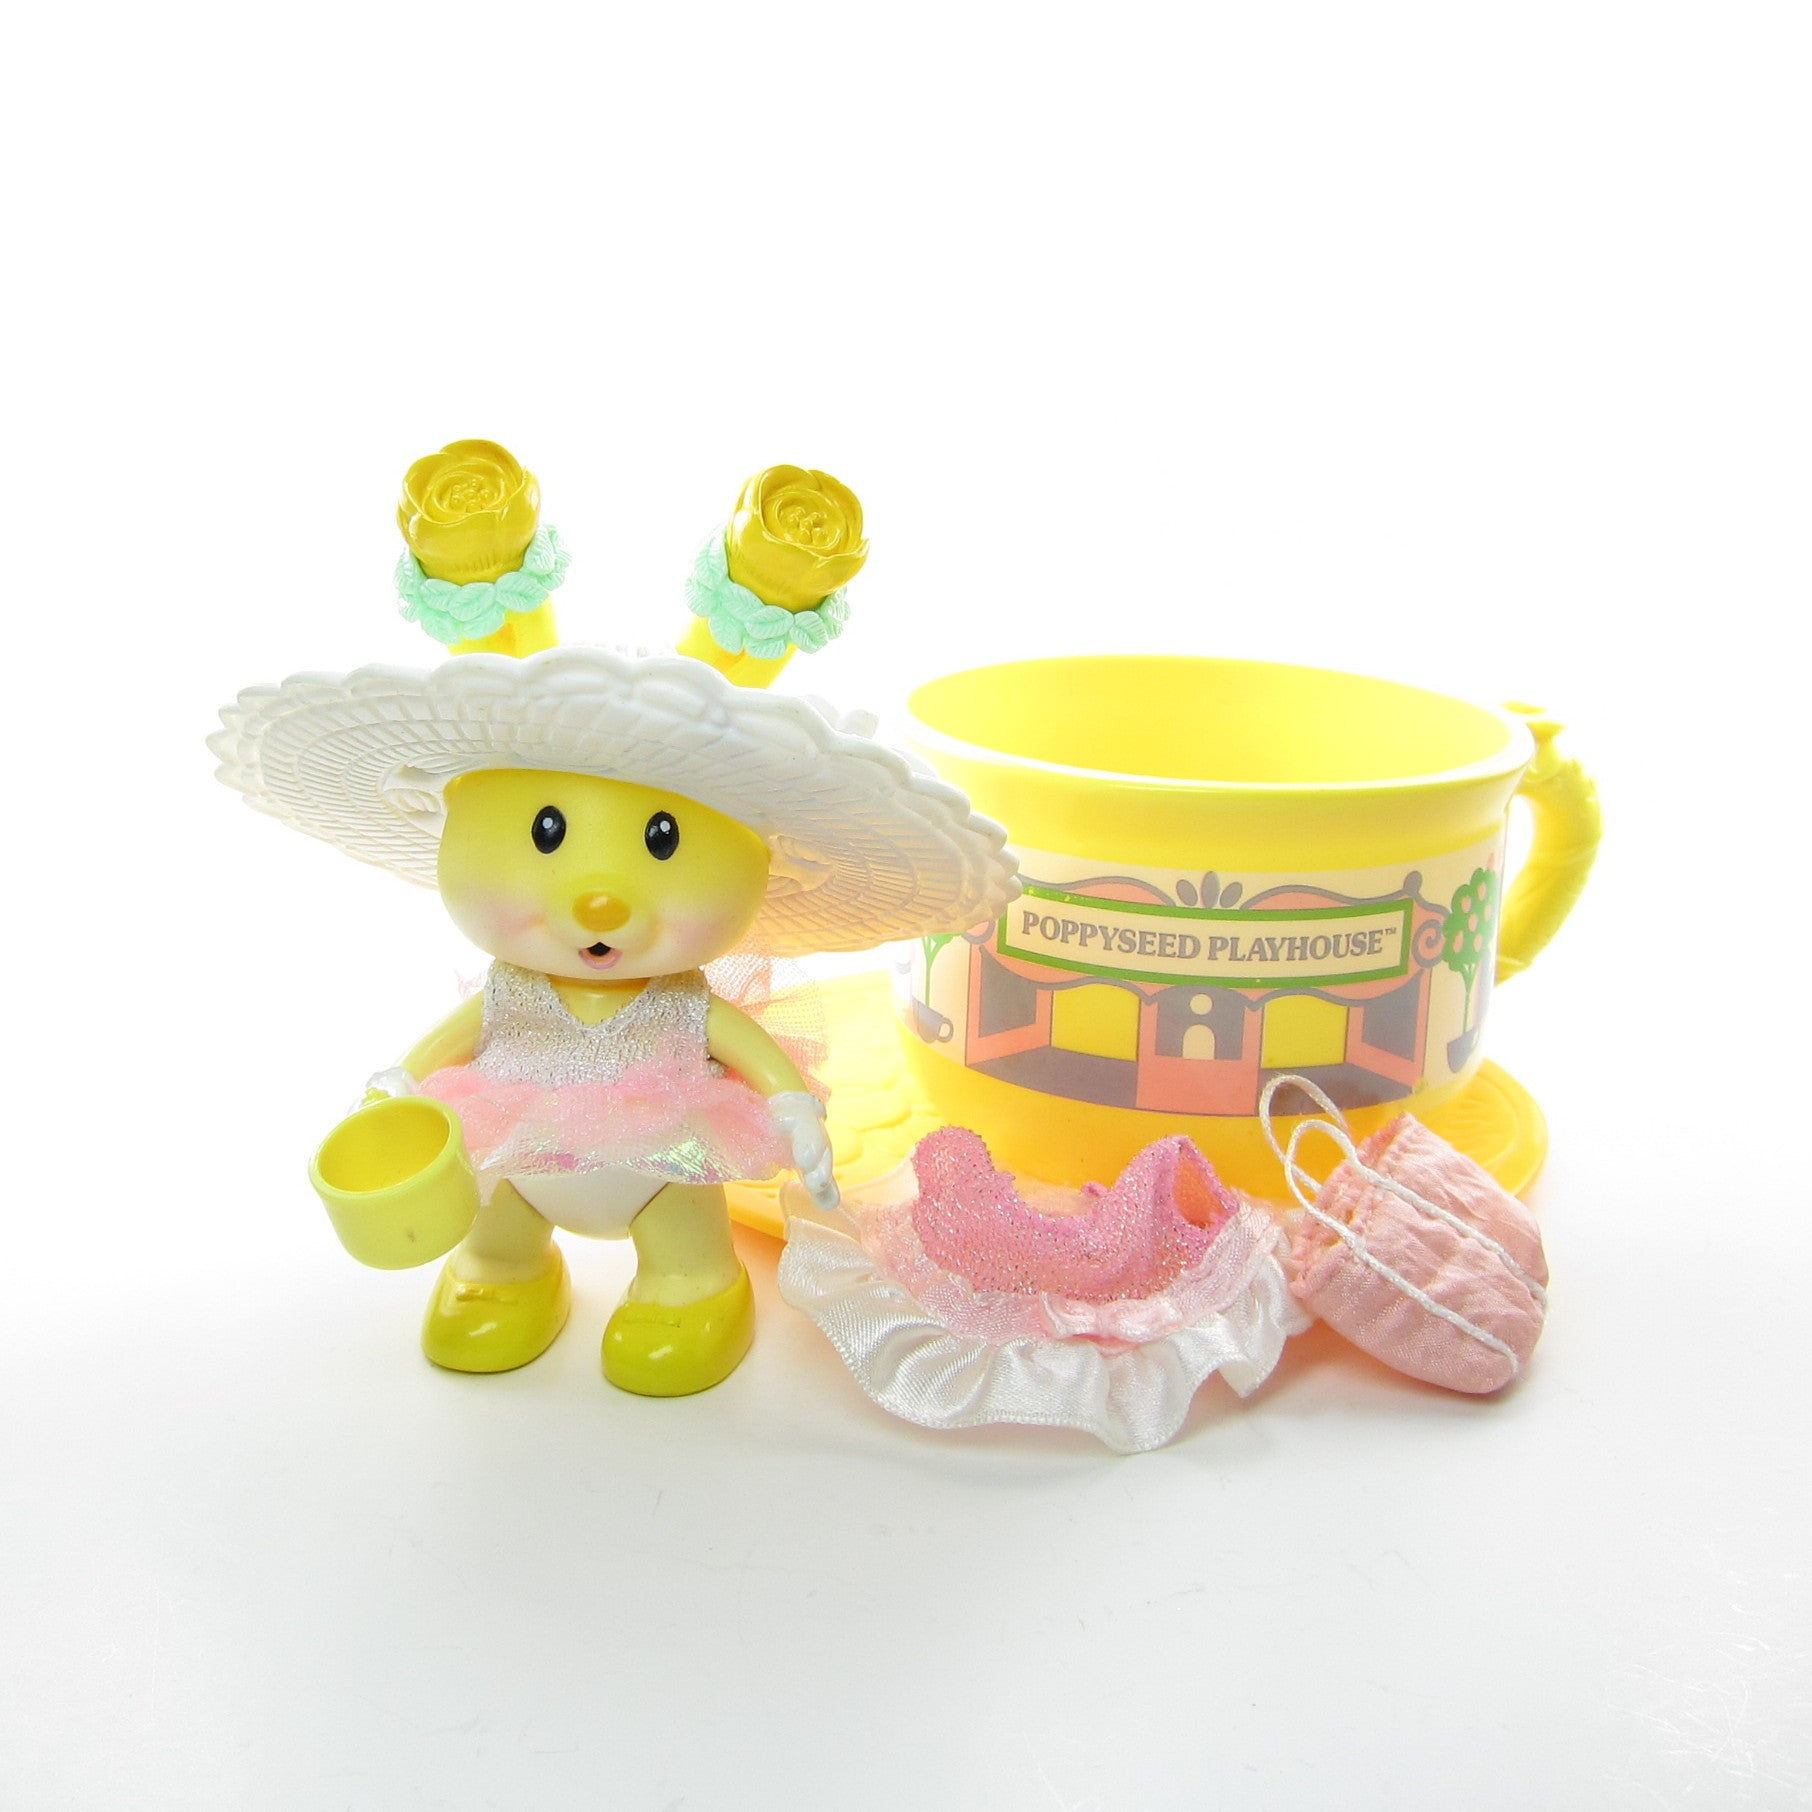 Buttercup Honey and the Poppyseed Playhouse Tea Bunnies toy